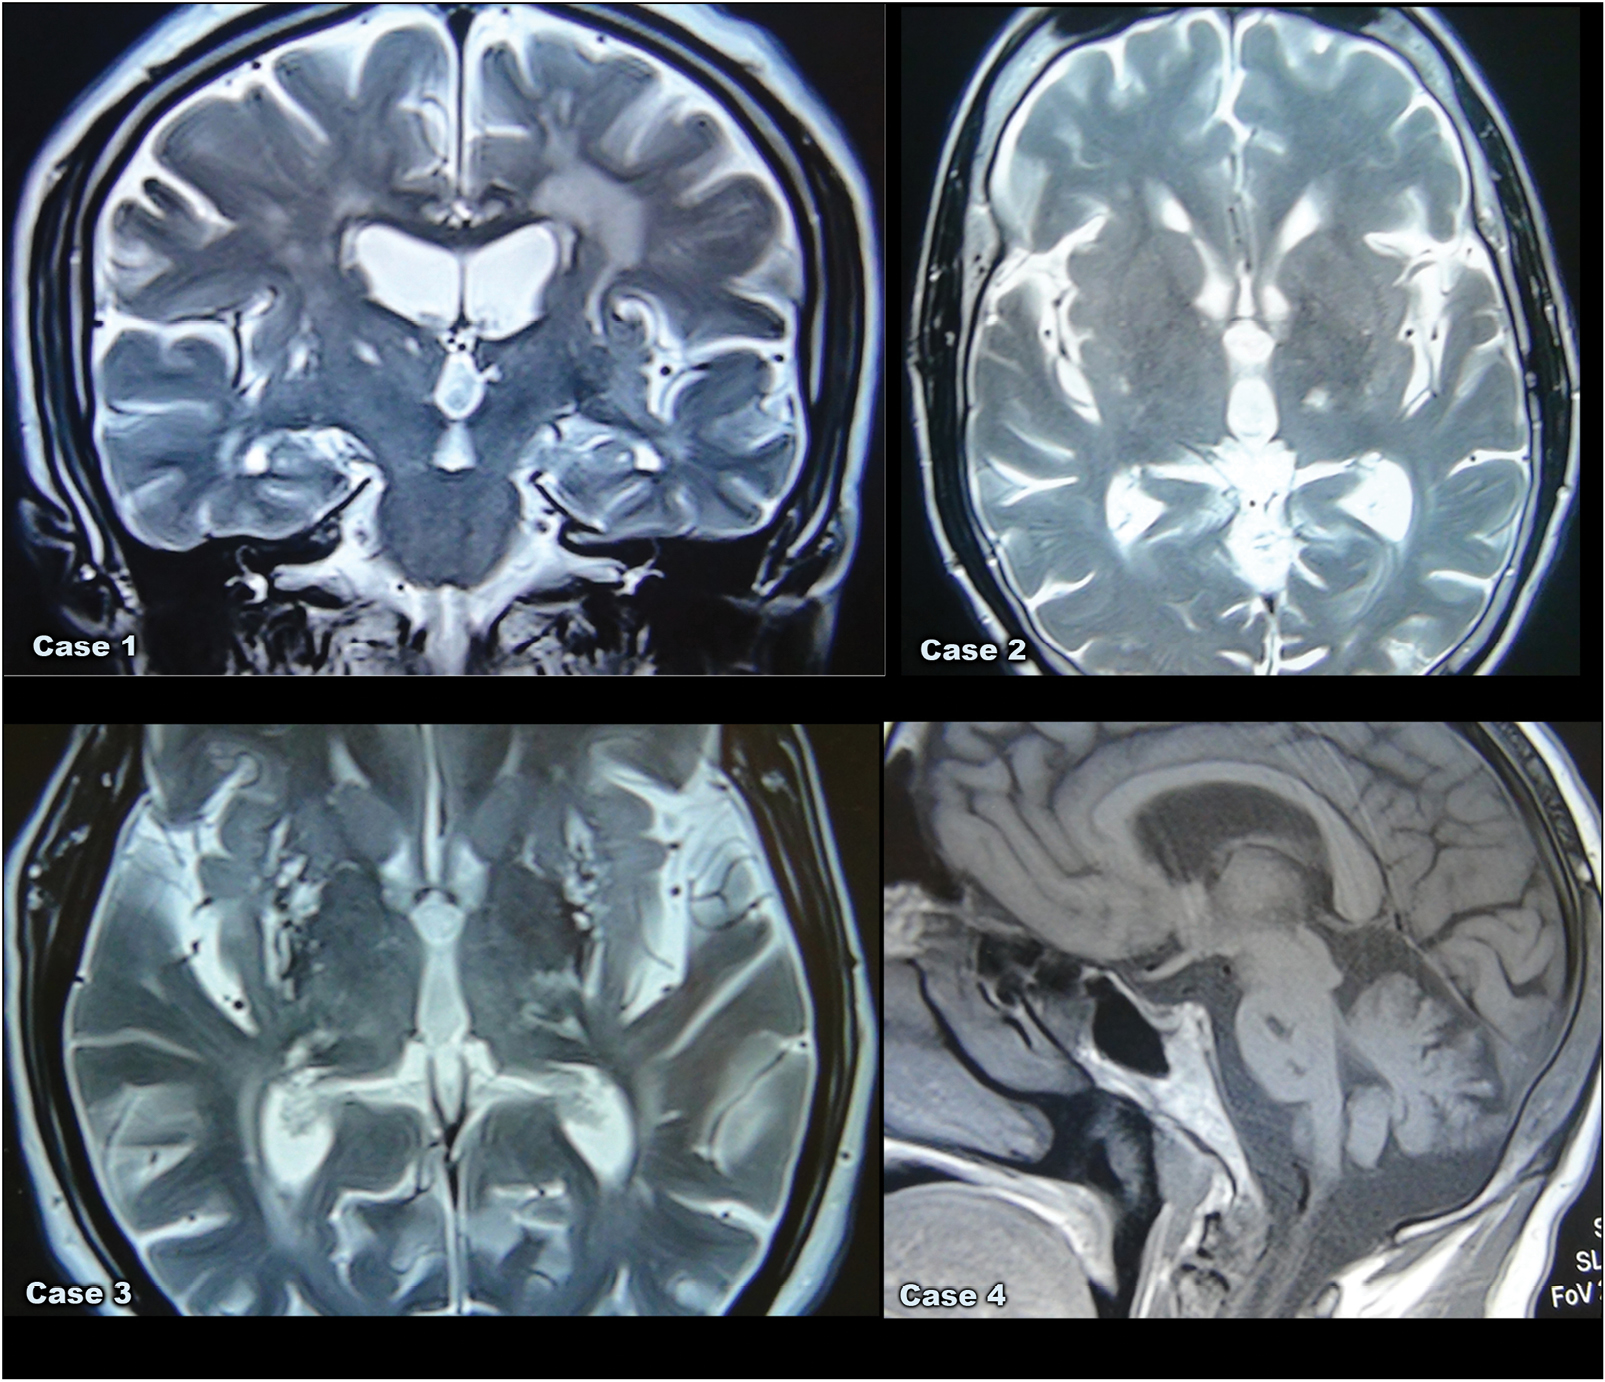 Figure 1: (A) Magnetic resonance imaging (MRI) of Case 1 brain, which is a coronal T2-weighted image, shows evidence of lacunar hyperintense signals in both basal ganglia (caudate/lentiform nucleus). (B) MRI of Case 2 brain is an axial T2-weighted image showing evidence of hyperintense signal in the left thalamus. (C) MRI of Case 3 brain is an axial T2-weighted image revealing evidence of hyperintense signals, involving both gangliocapsular regions with peripheral blooming. Lacunar hyperintense signals are seen in both the thalami as well. (D) MRI of Case 4 brain is a sagittal T1-weighted image of the pons showing two lacunar infarcts